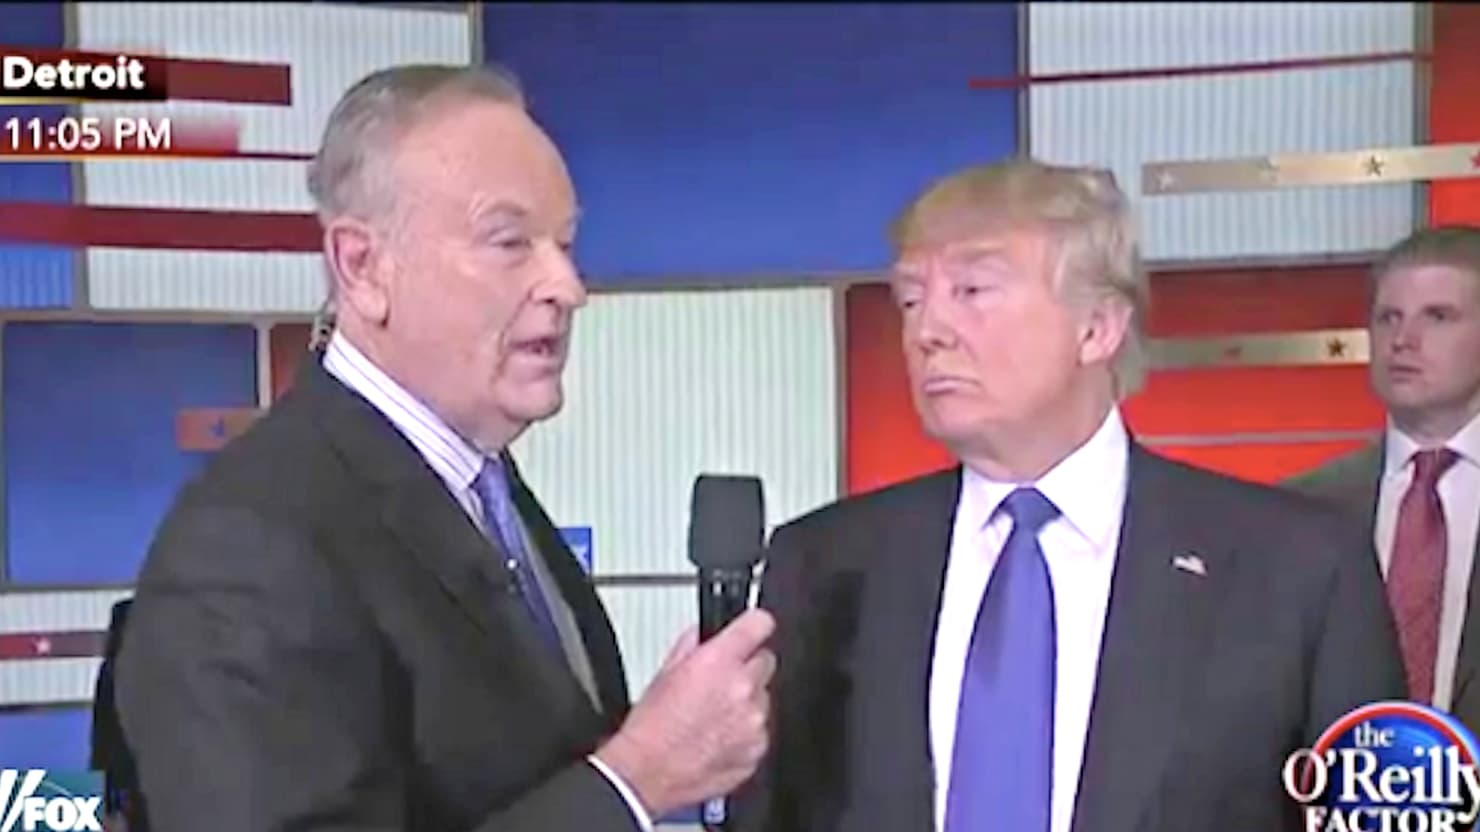 Bill O'Reilly Claims A Secret Tape Exists Of Woman Offered $200k To Falsely Accuse Trump Of Sexual Misconduct - VIDEO